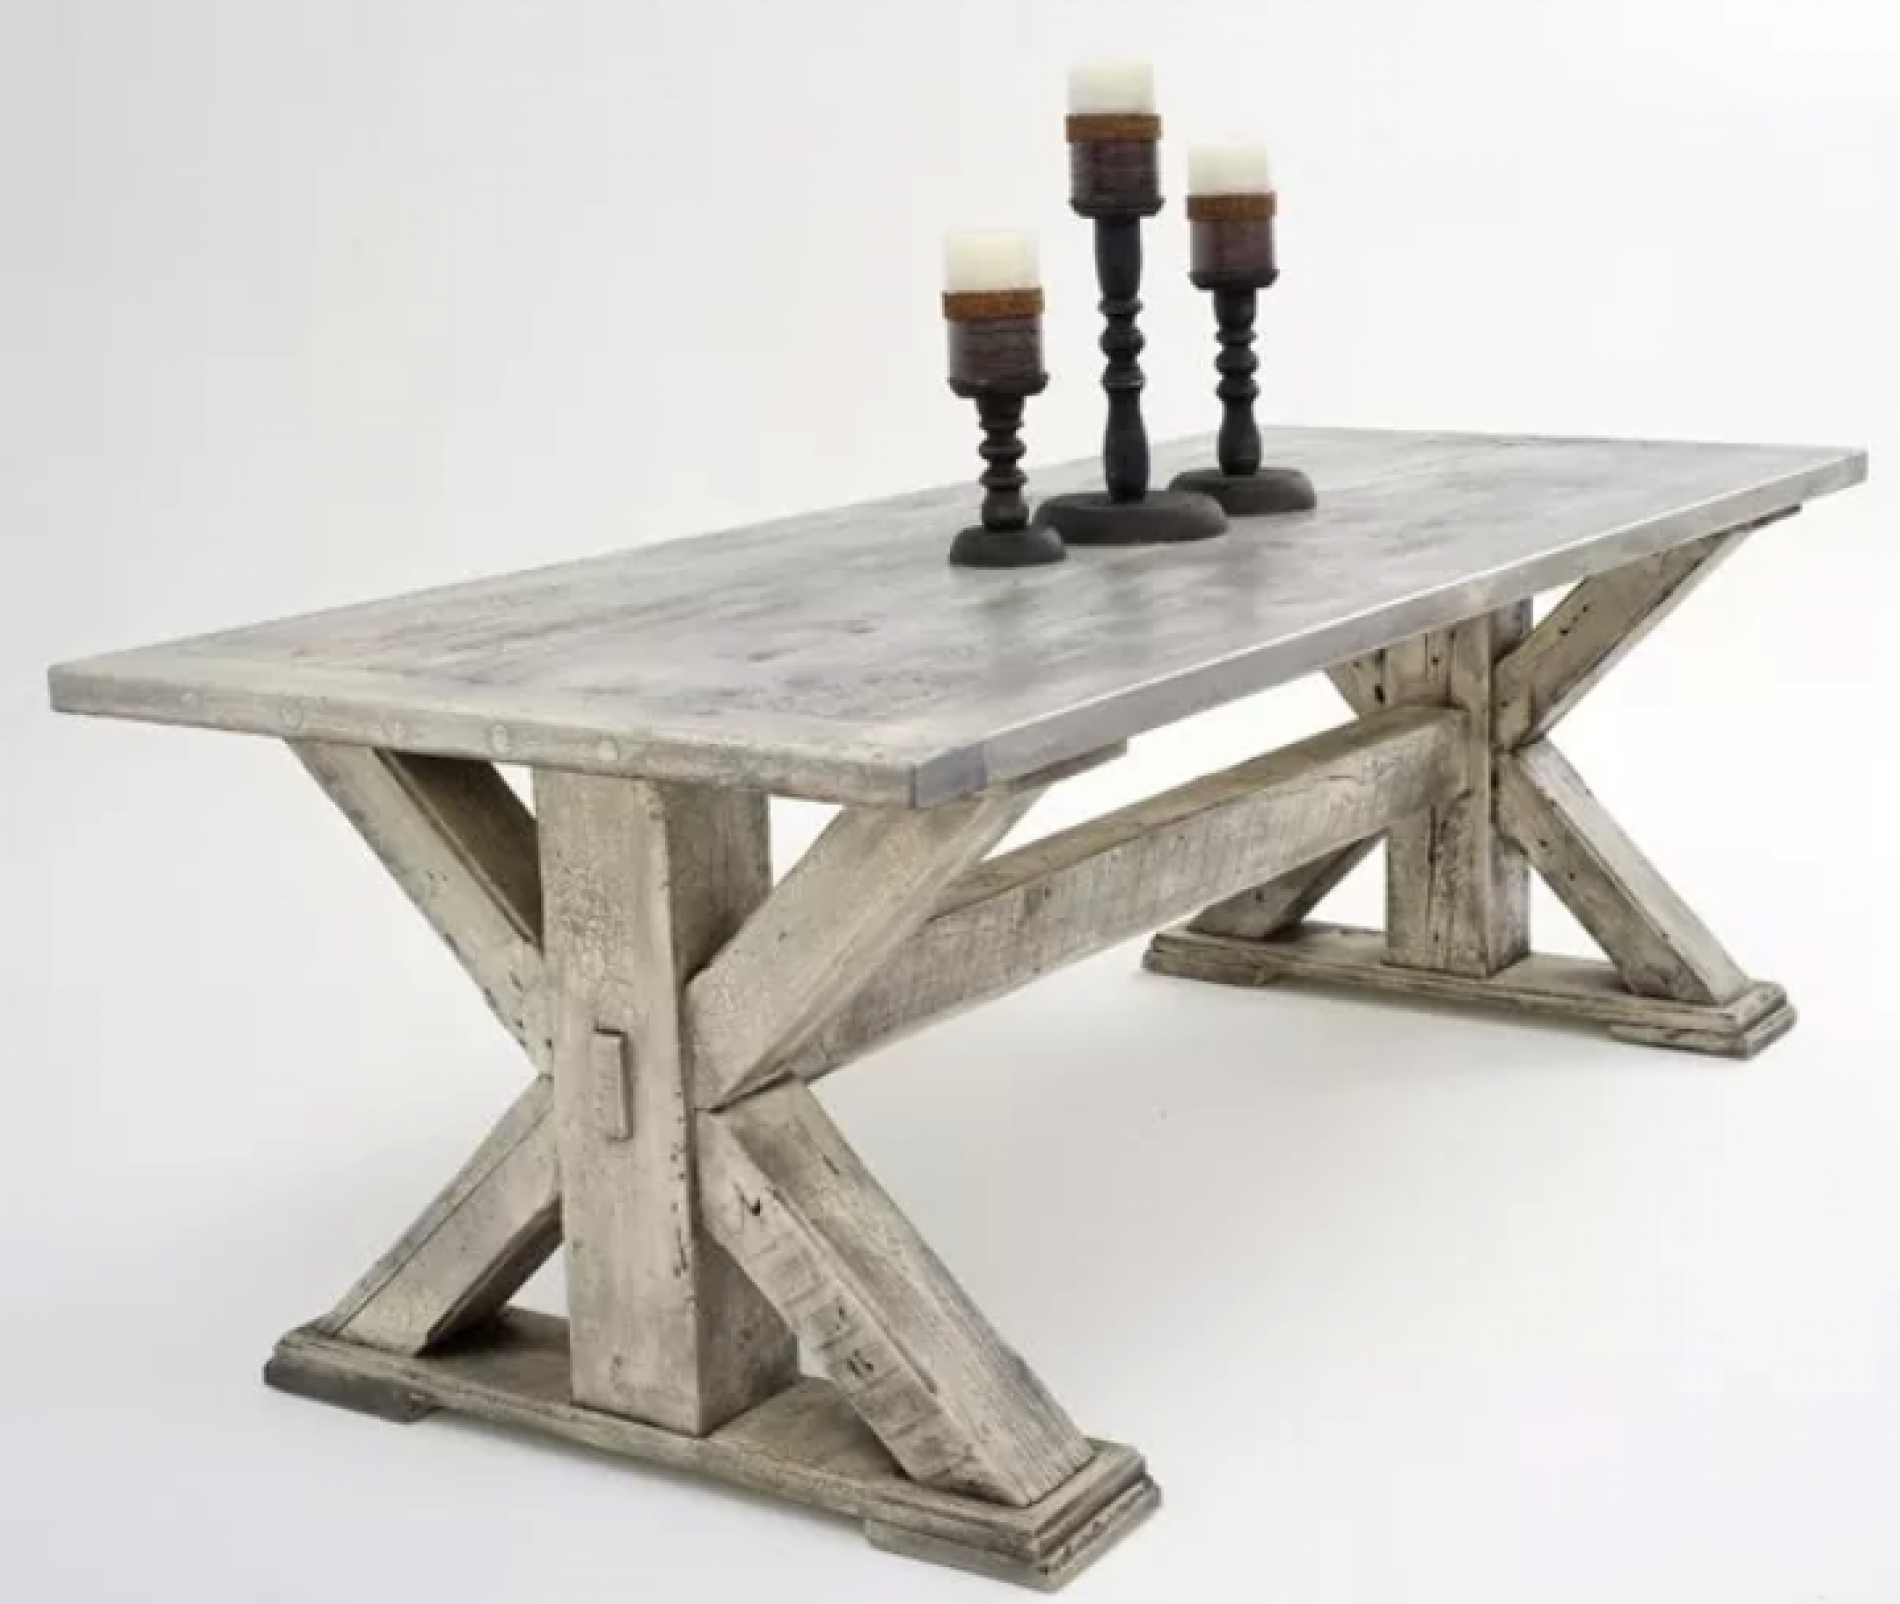 Rustic Furniture Barnwood furniture, Cabin decor, Rustic